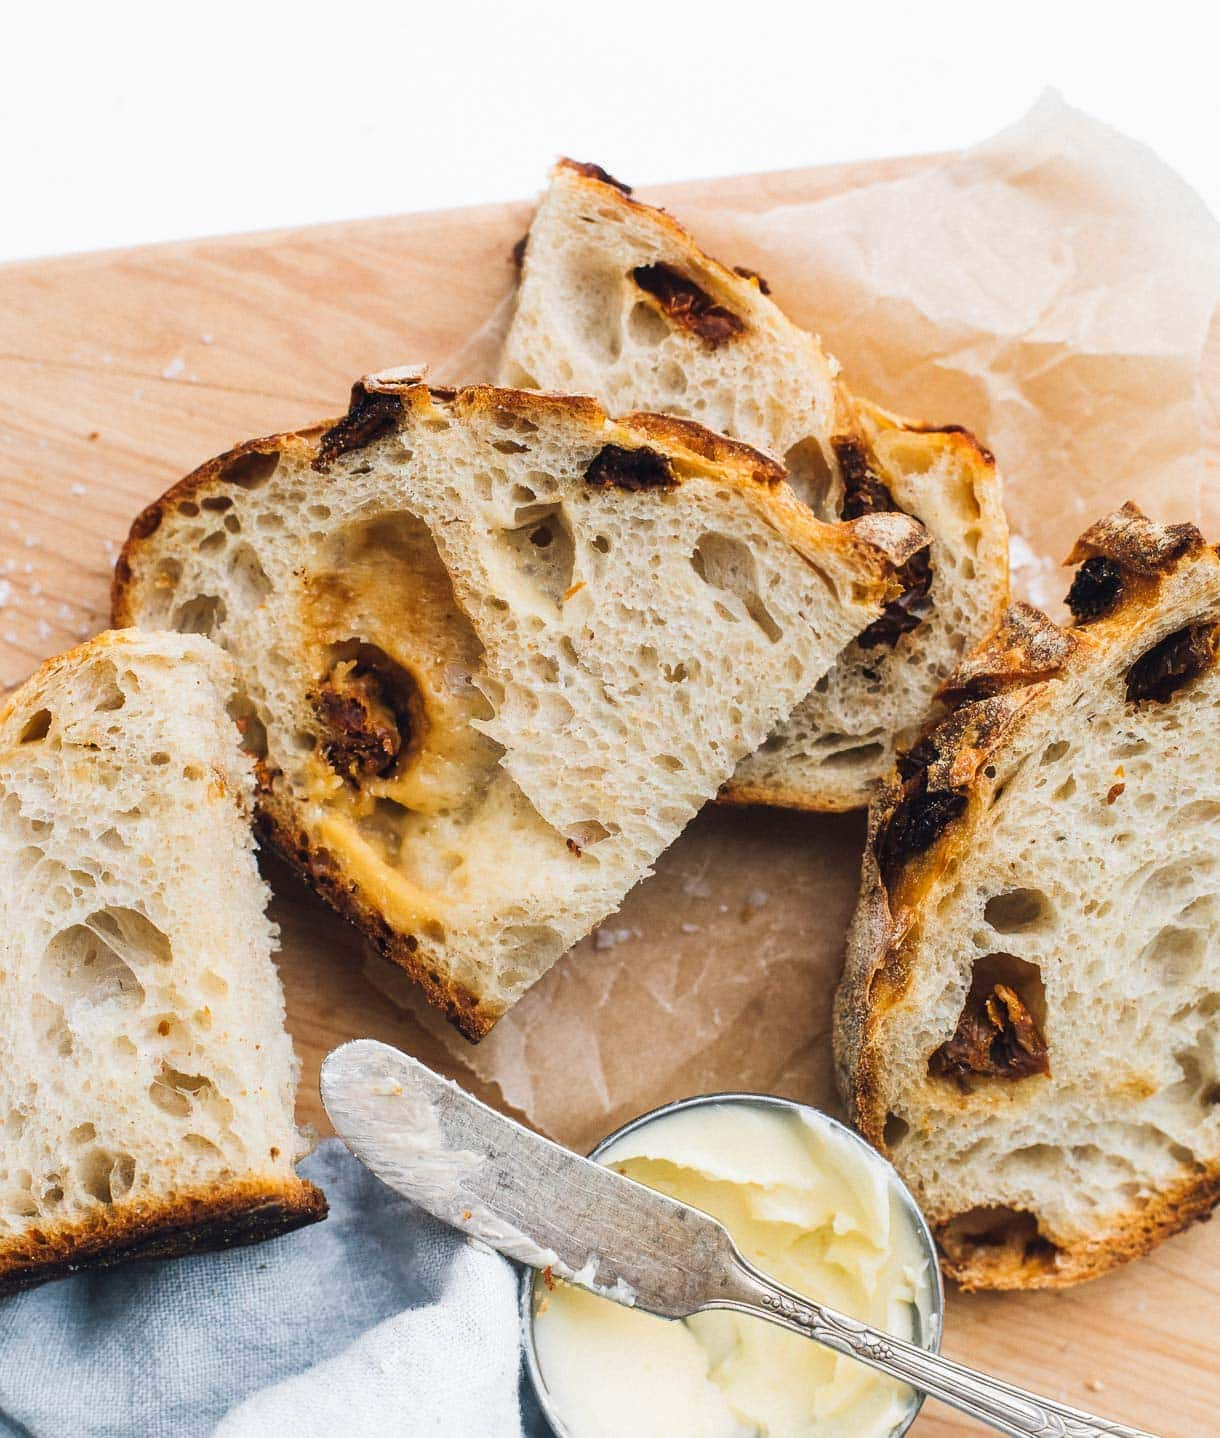 sun dried tomato and cheddar sourdough slices on a wooden cutting board, butter in a little silver dish.